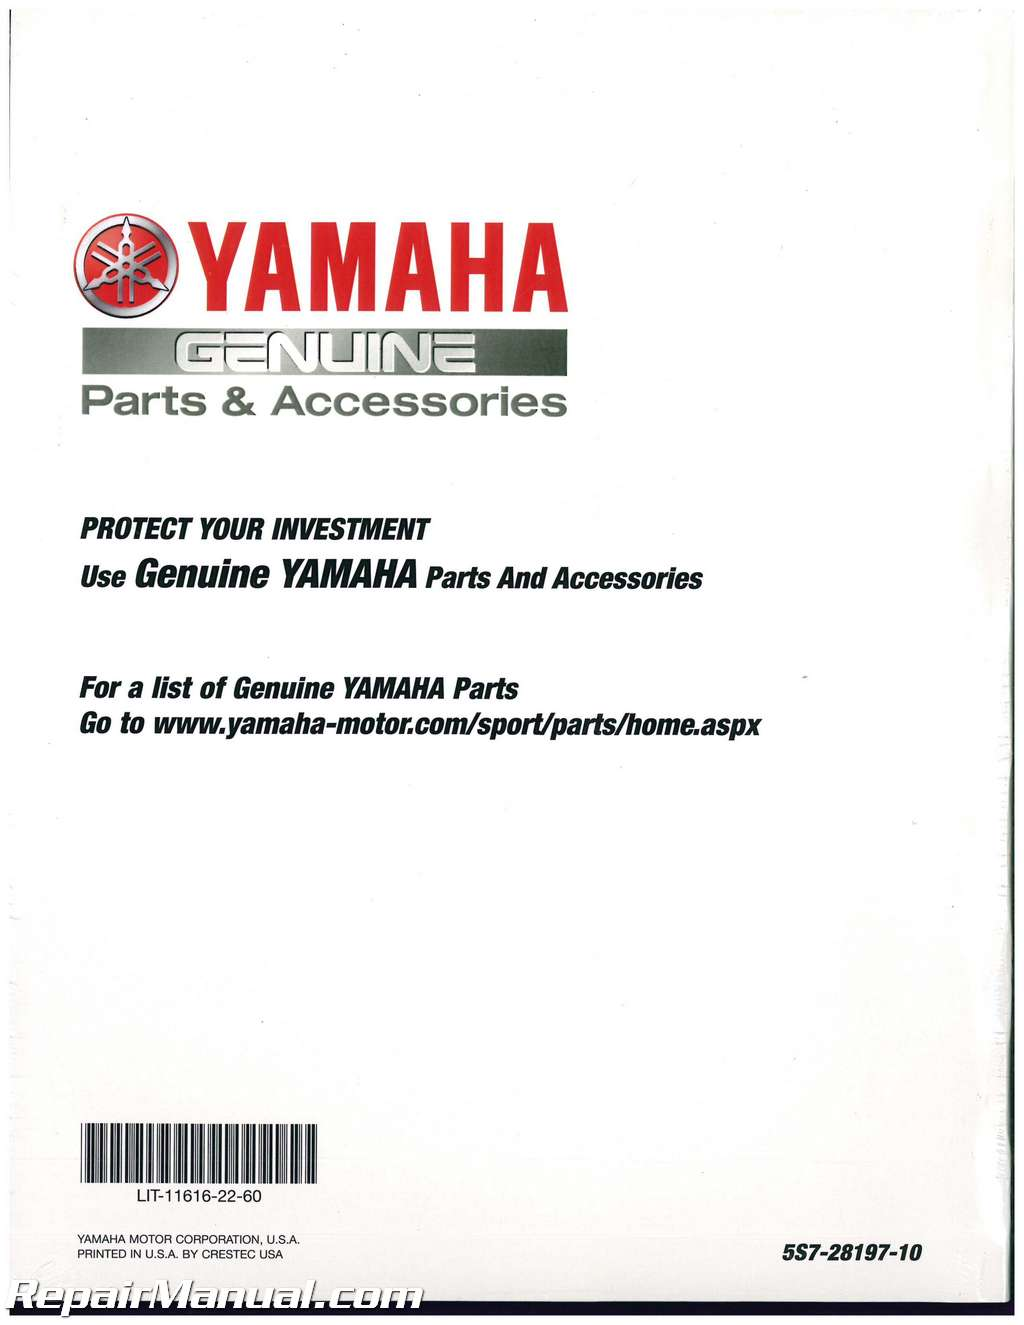 2009 2017 yamaha xvs950 v star motorcycle service manual rh repairmanual com yamaha v star 1100 service manual yamaha v star 250 owners manual 2009